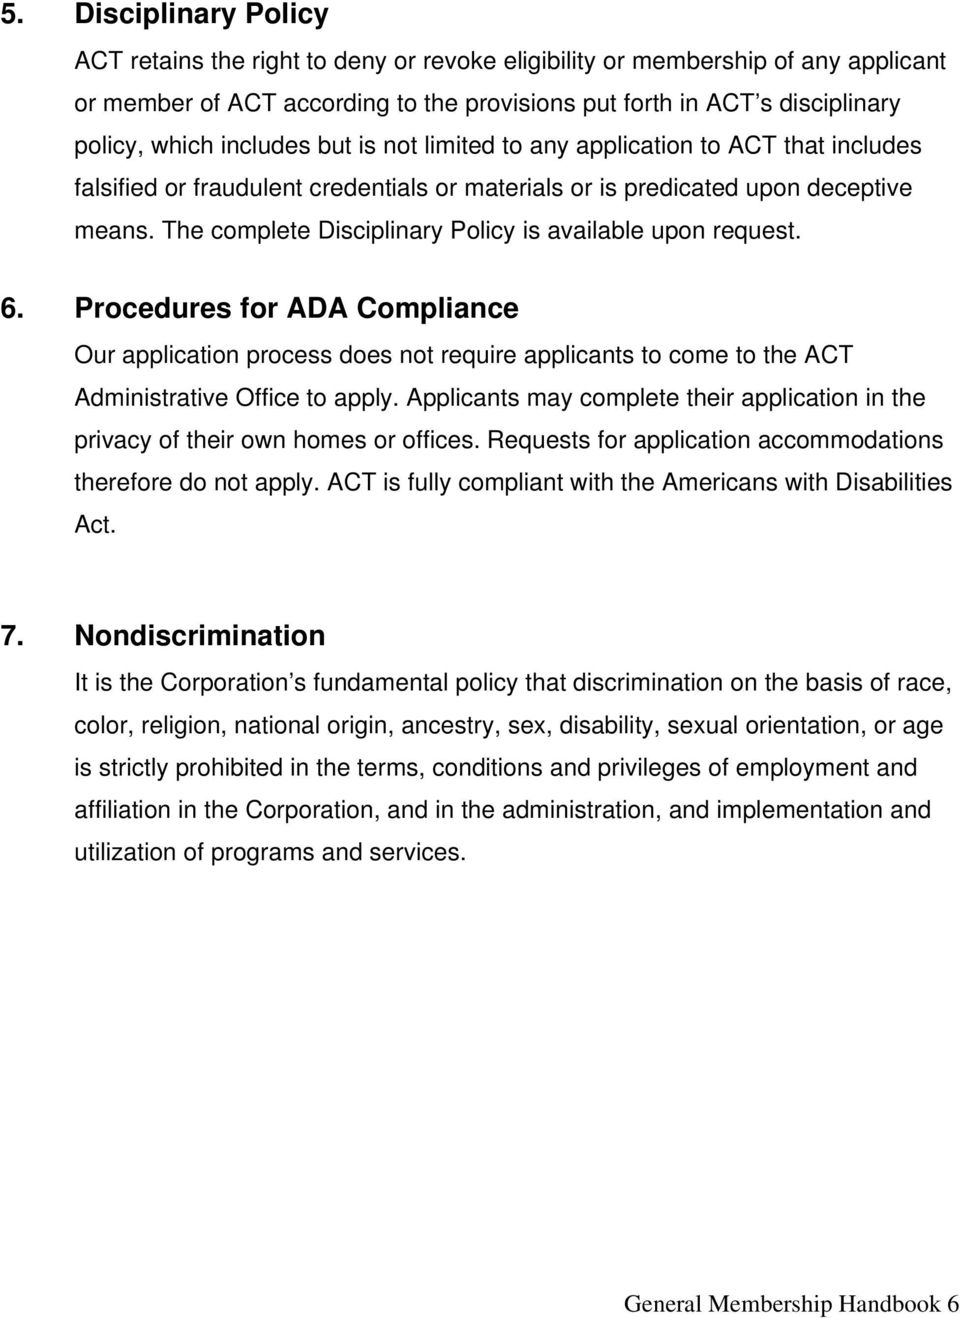 The complete Disciplinary Policy is available upon request. 6. Procedures for ADA Compliance Our application process does not require applicants to come to the ACT Administrative Office to apply.